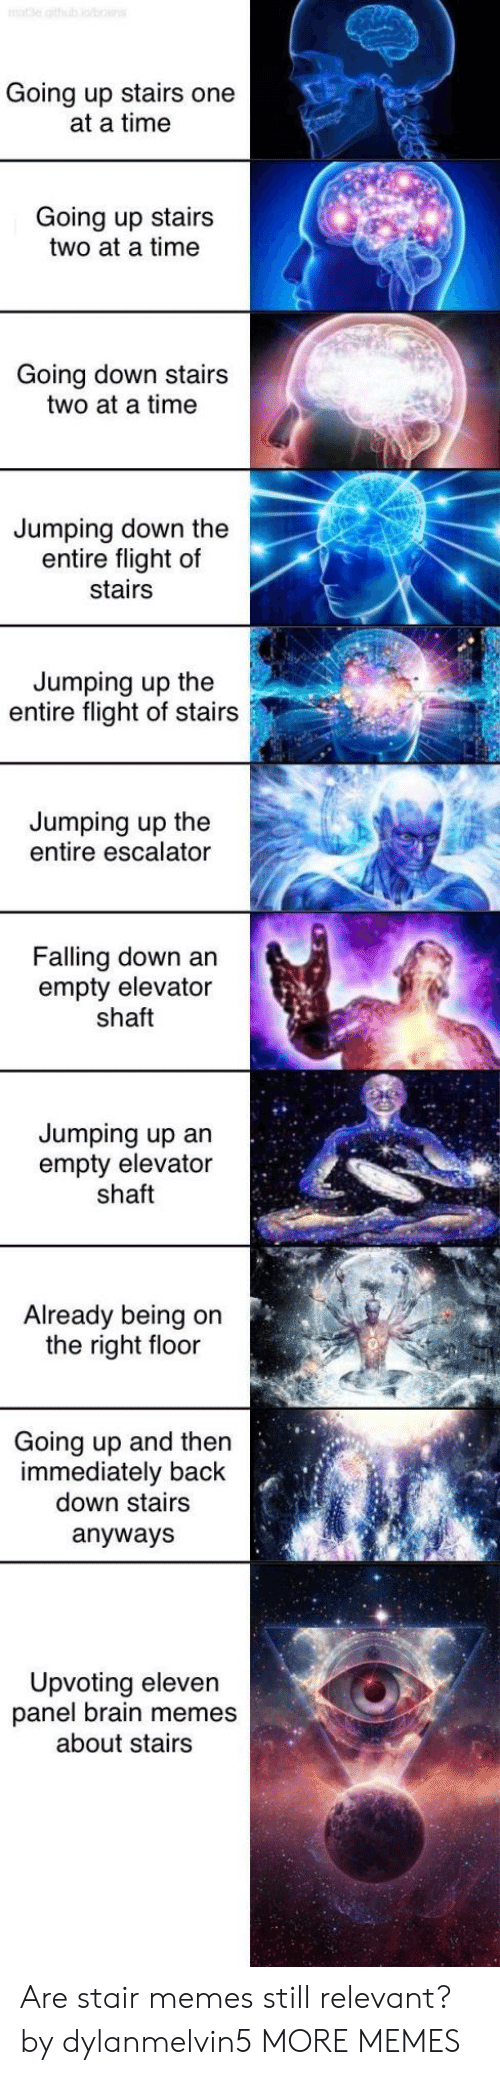 Escalator: Going up stairs one  at a time  Going up stairs  two at a time  Going down stairs  two at a time  Jumping down the  entire flight of  stairs  Jumping up the  entire flight of stairs  Jumping up the  entire escalator  Falling down an  empty elevator  shaft  Jumping up an  empty elevator  shaft  Already being on  the right floor  Going up and then  immediately back  down stairs  anyways  Upvoting eleven  panel brain memes  about stairs Are stair memes still relevant? by dylanmelvin5 MORE MEMES